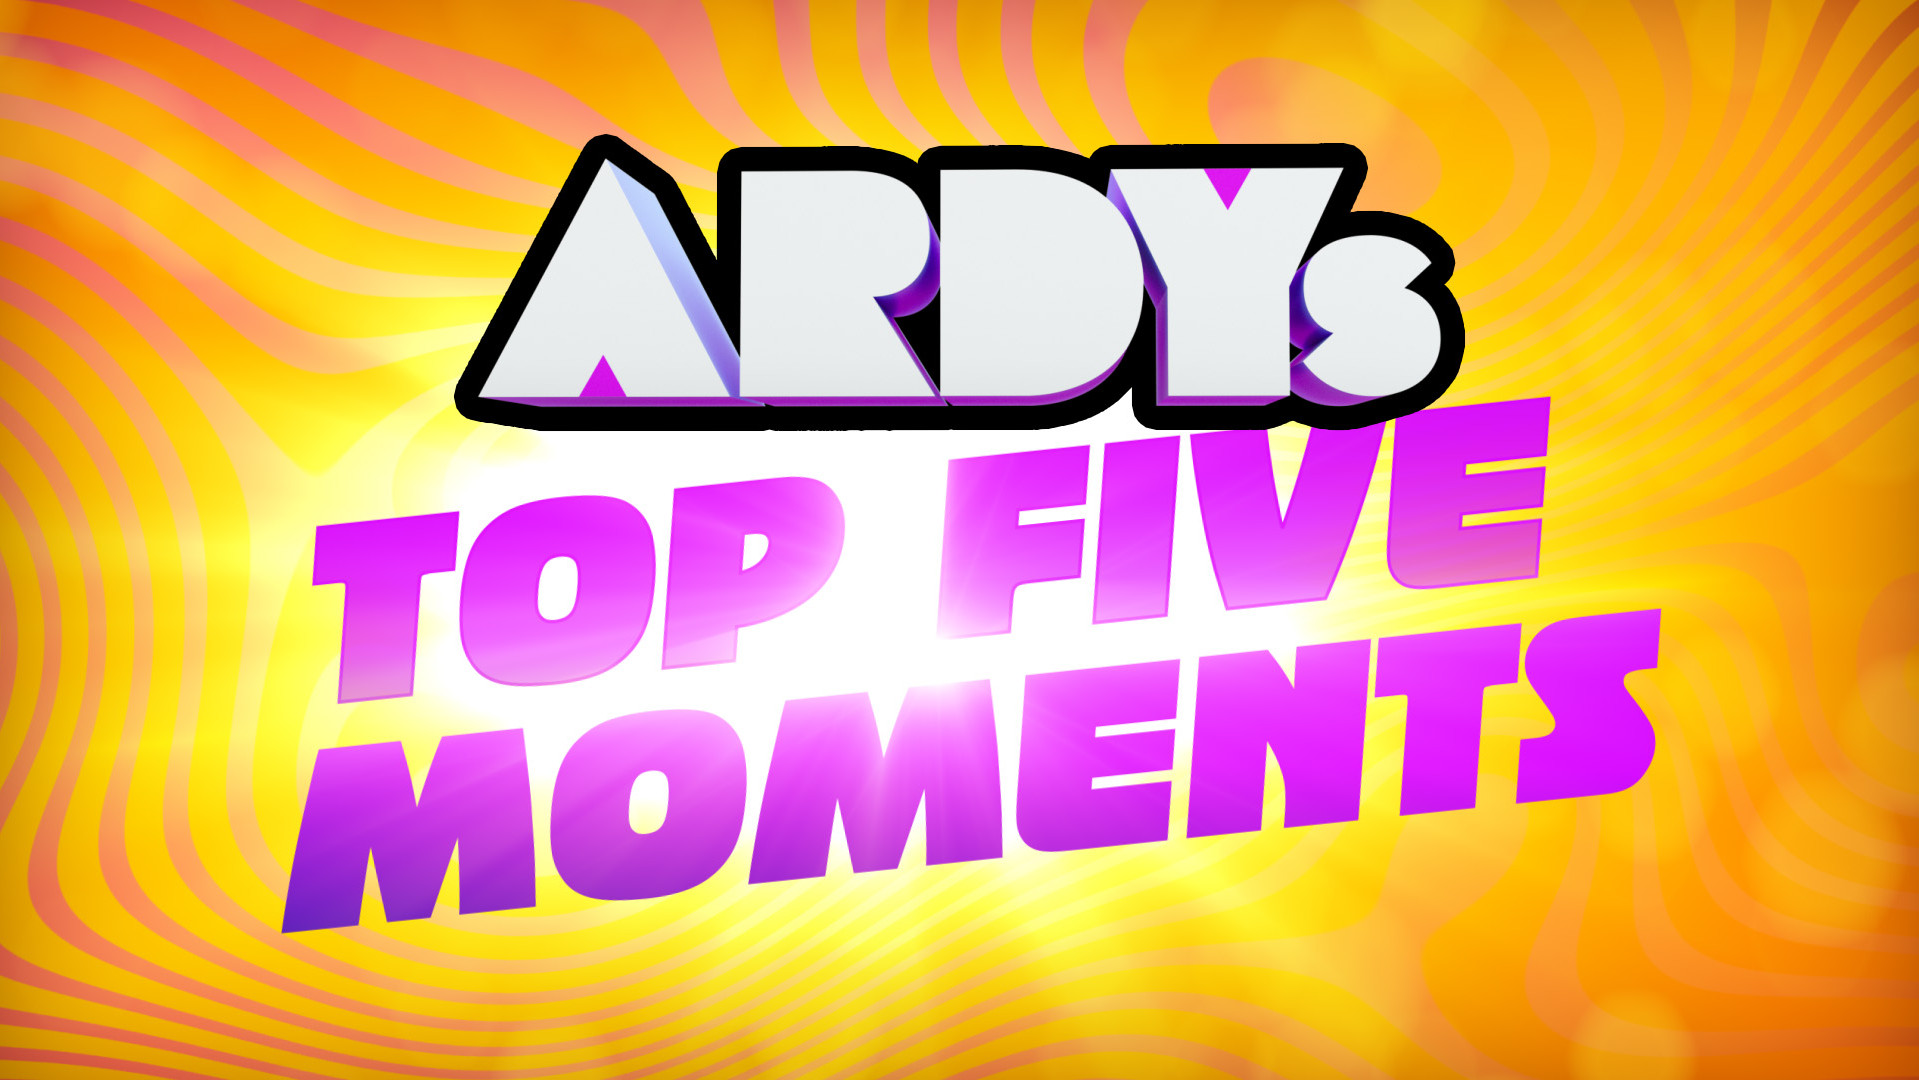 ARDY_Category_ArdyMoment_v1.mp4